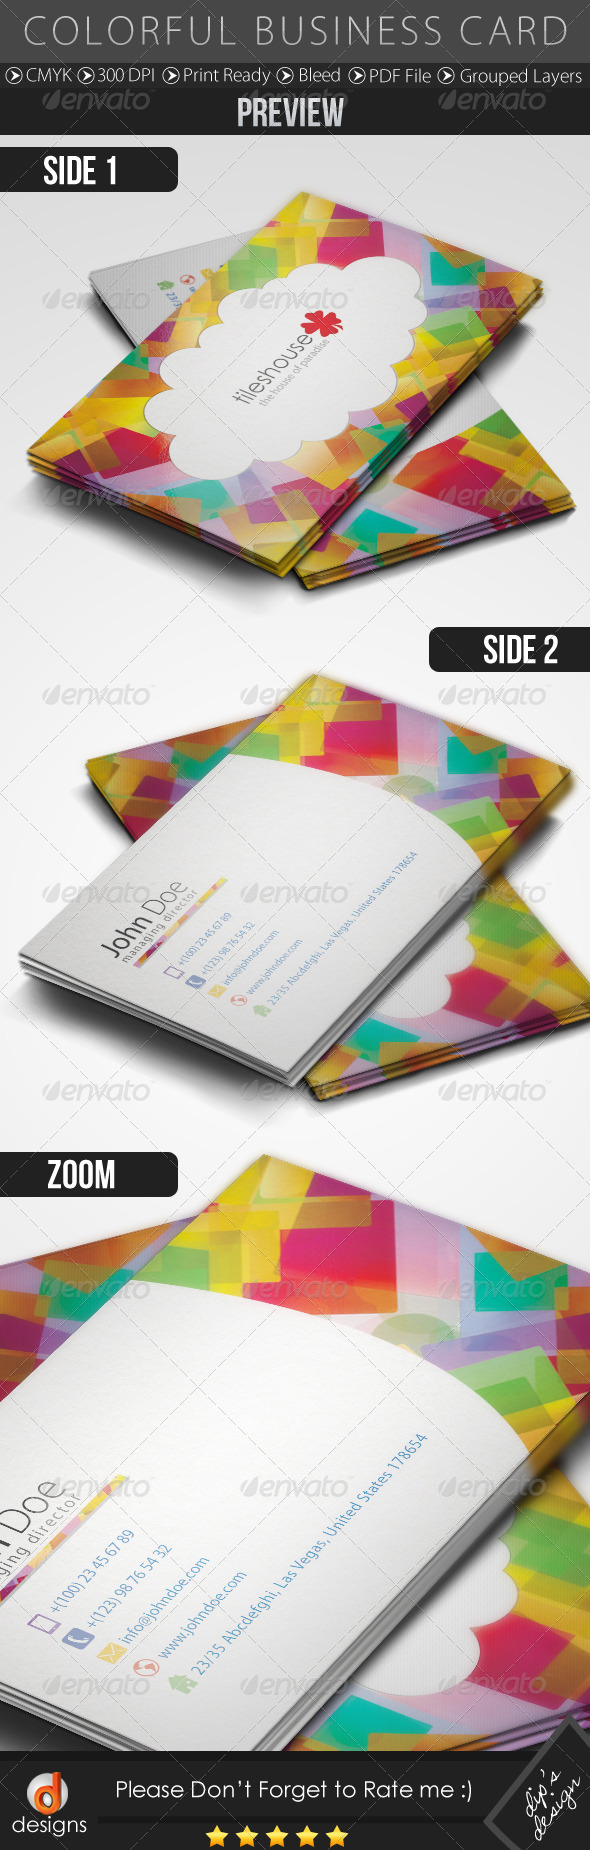 GraphicRiver Colorful Business Card 4979344